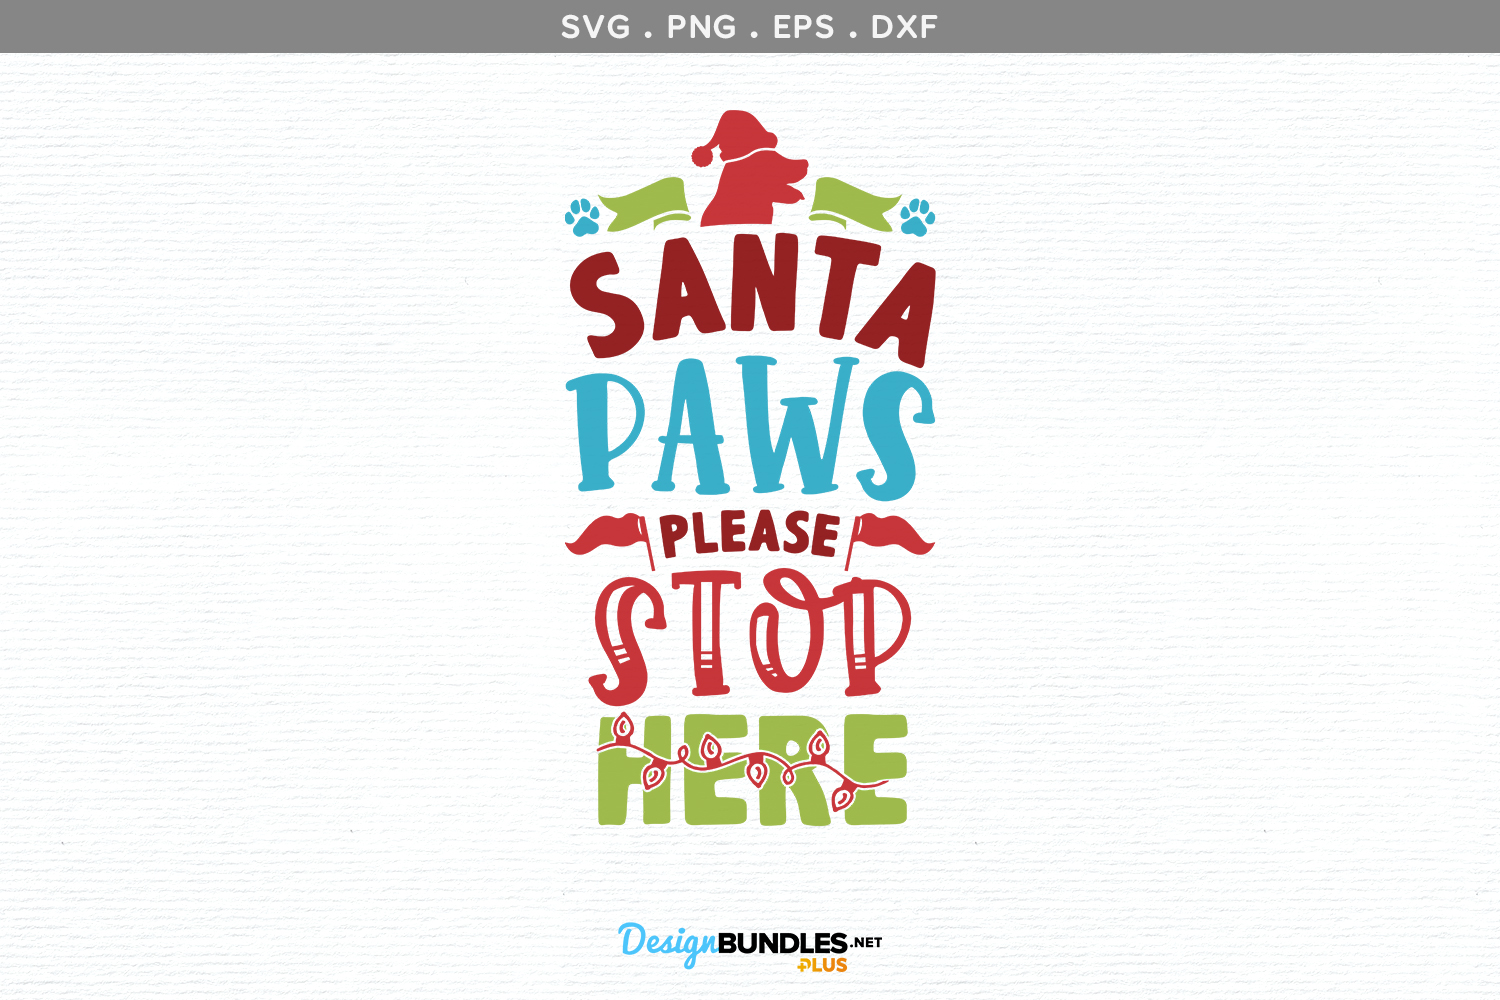 Santa Paws, Please stop here - svg, printable example image 2